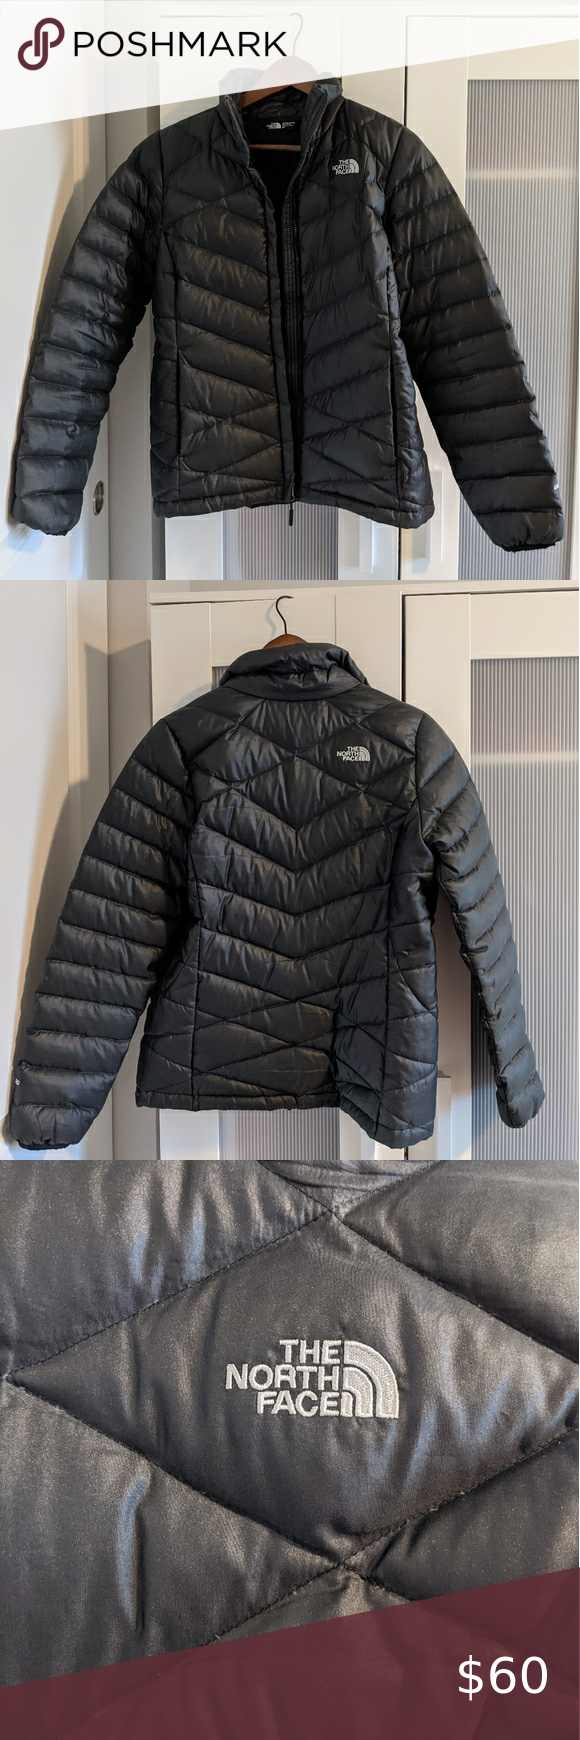 The North Face 550 Black Gray Puffer Jacket Jackets The North Face North Face Jacket [ 1740 x 580 Pixel ]